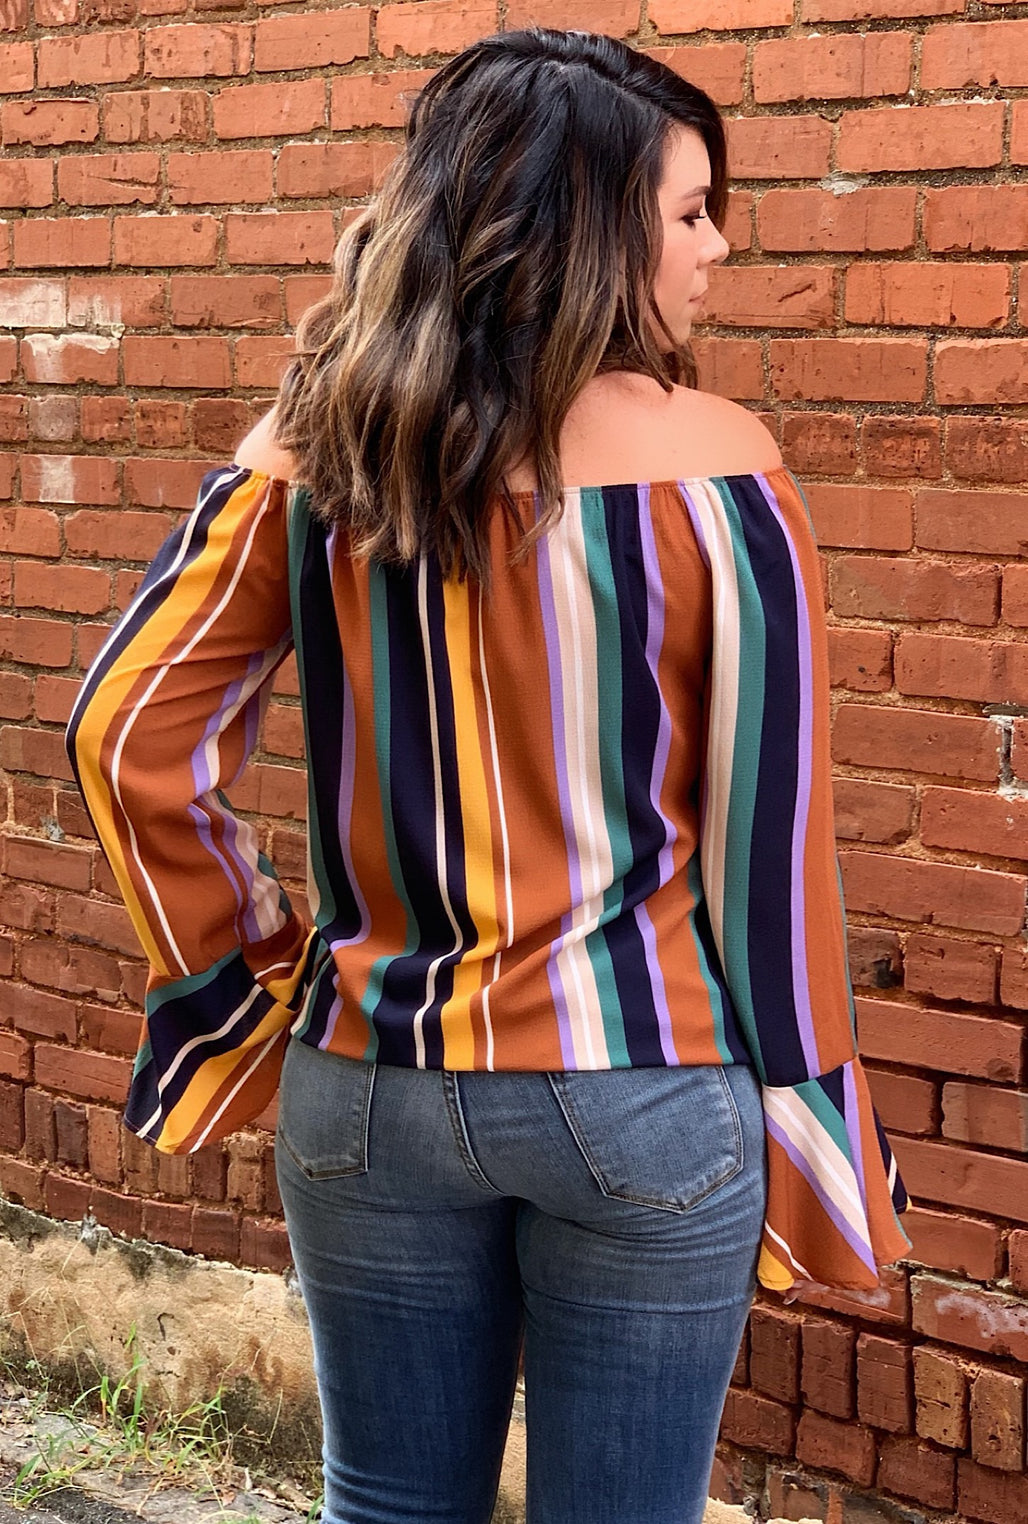 Sydney Striped Top - Bellamie Boutique